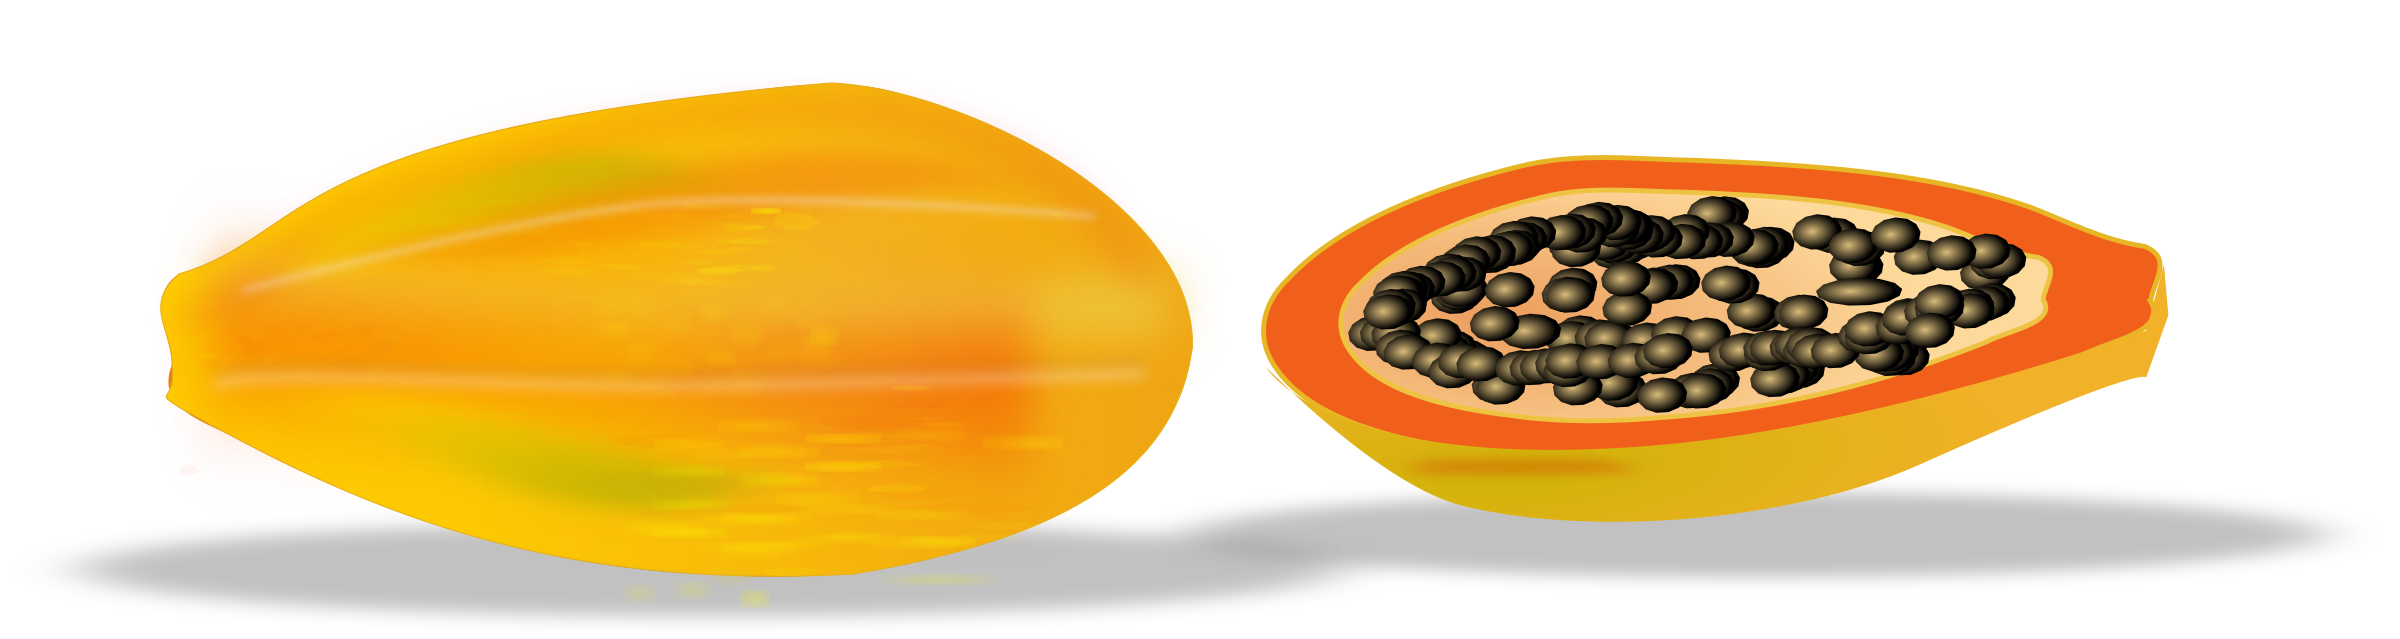 papaya sliced by netalloy